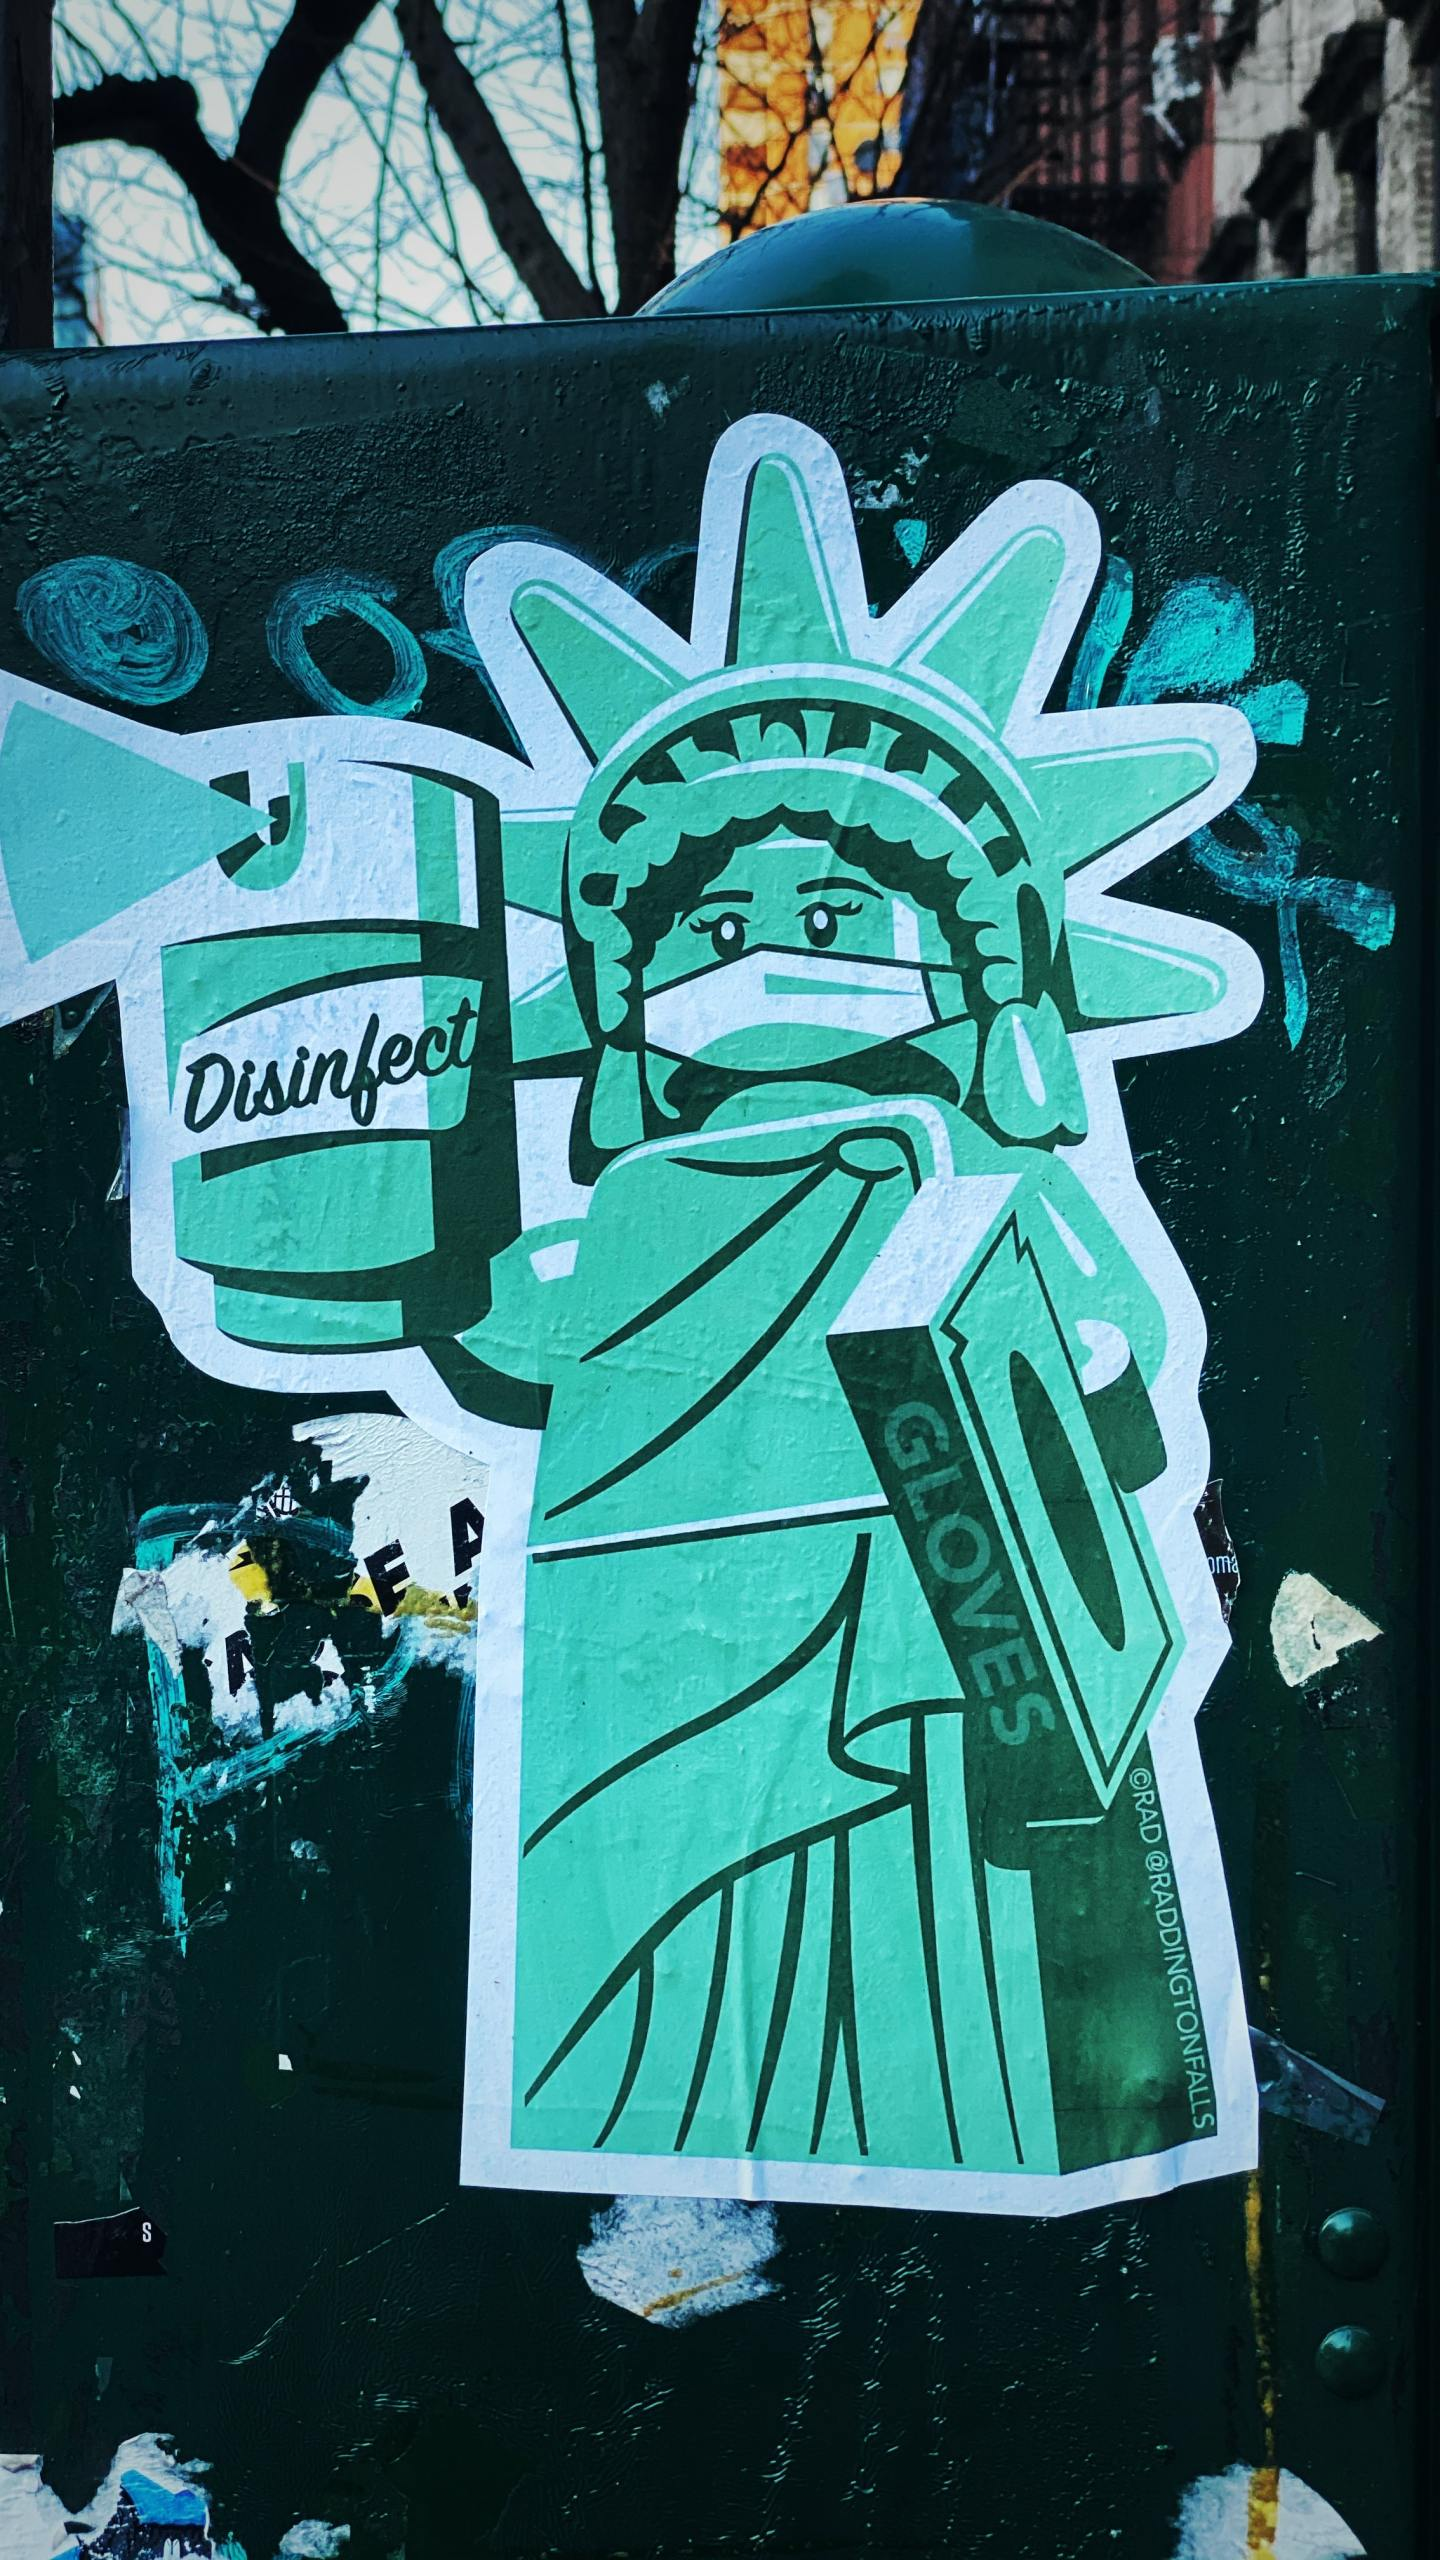 New York City street art featuring a Lego Statue of Liberty in PPE